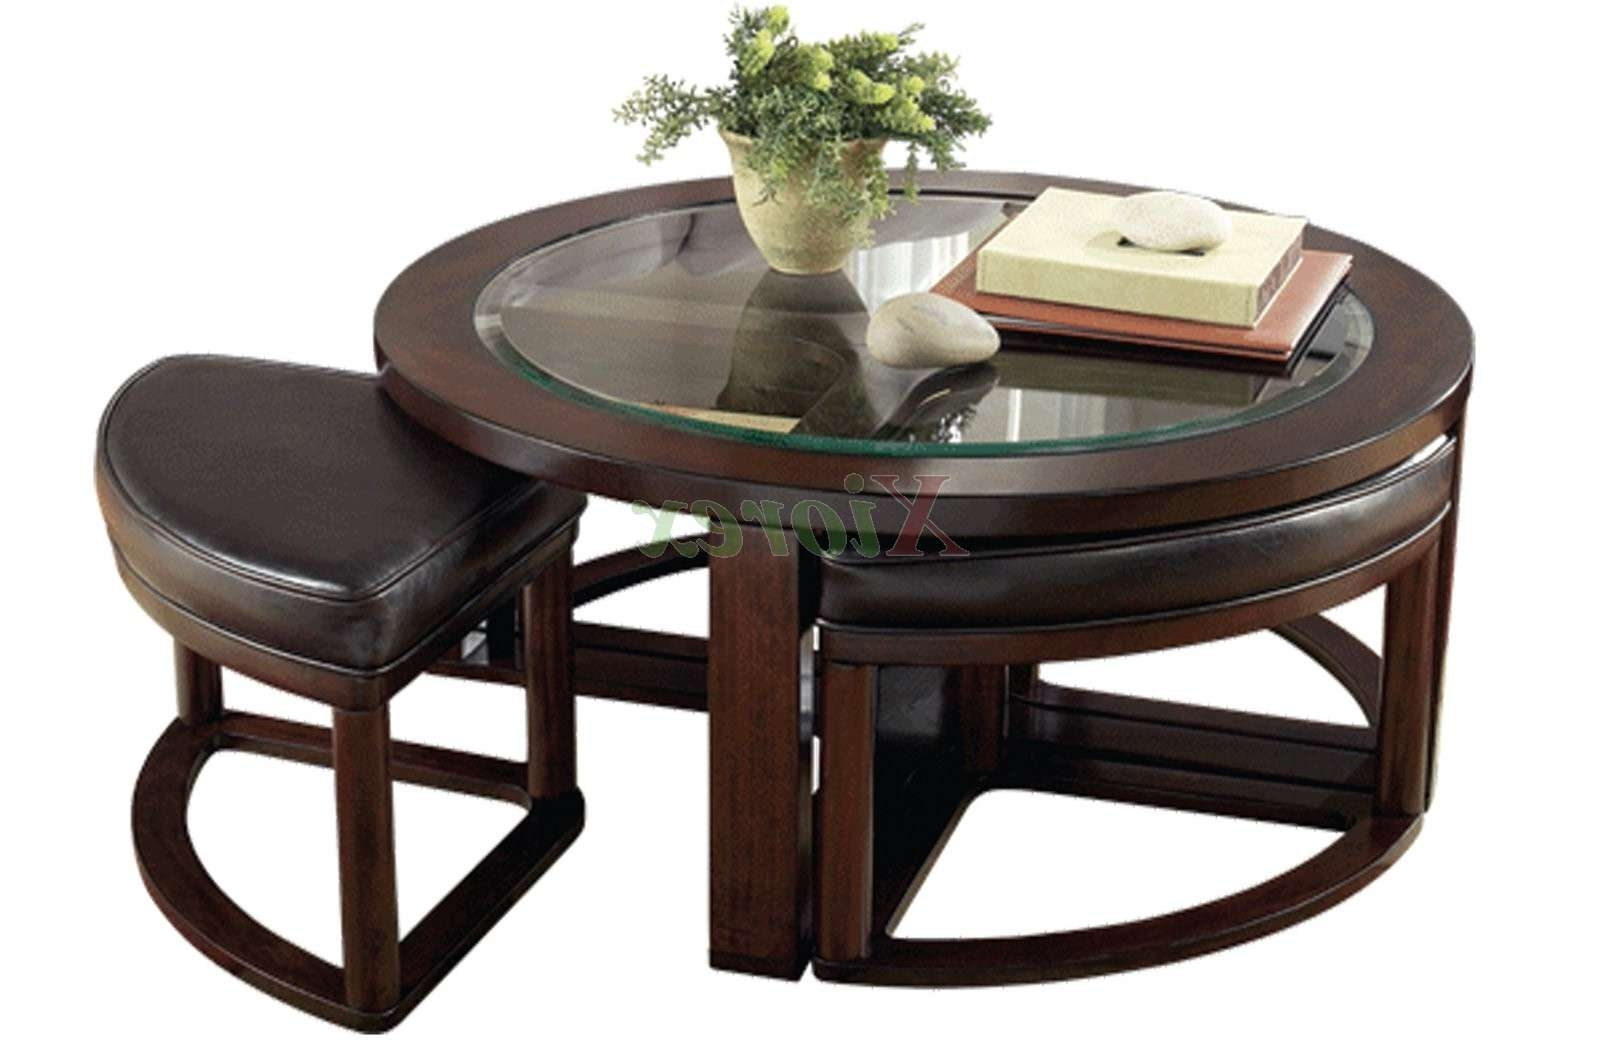 Coffee Table : Excellent Coffee Table With Chairs Underneath Intended For Famous Coffee Table With Chairs (View 2 of 20)